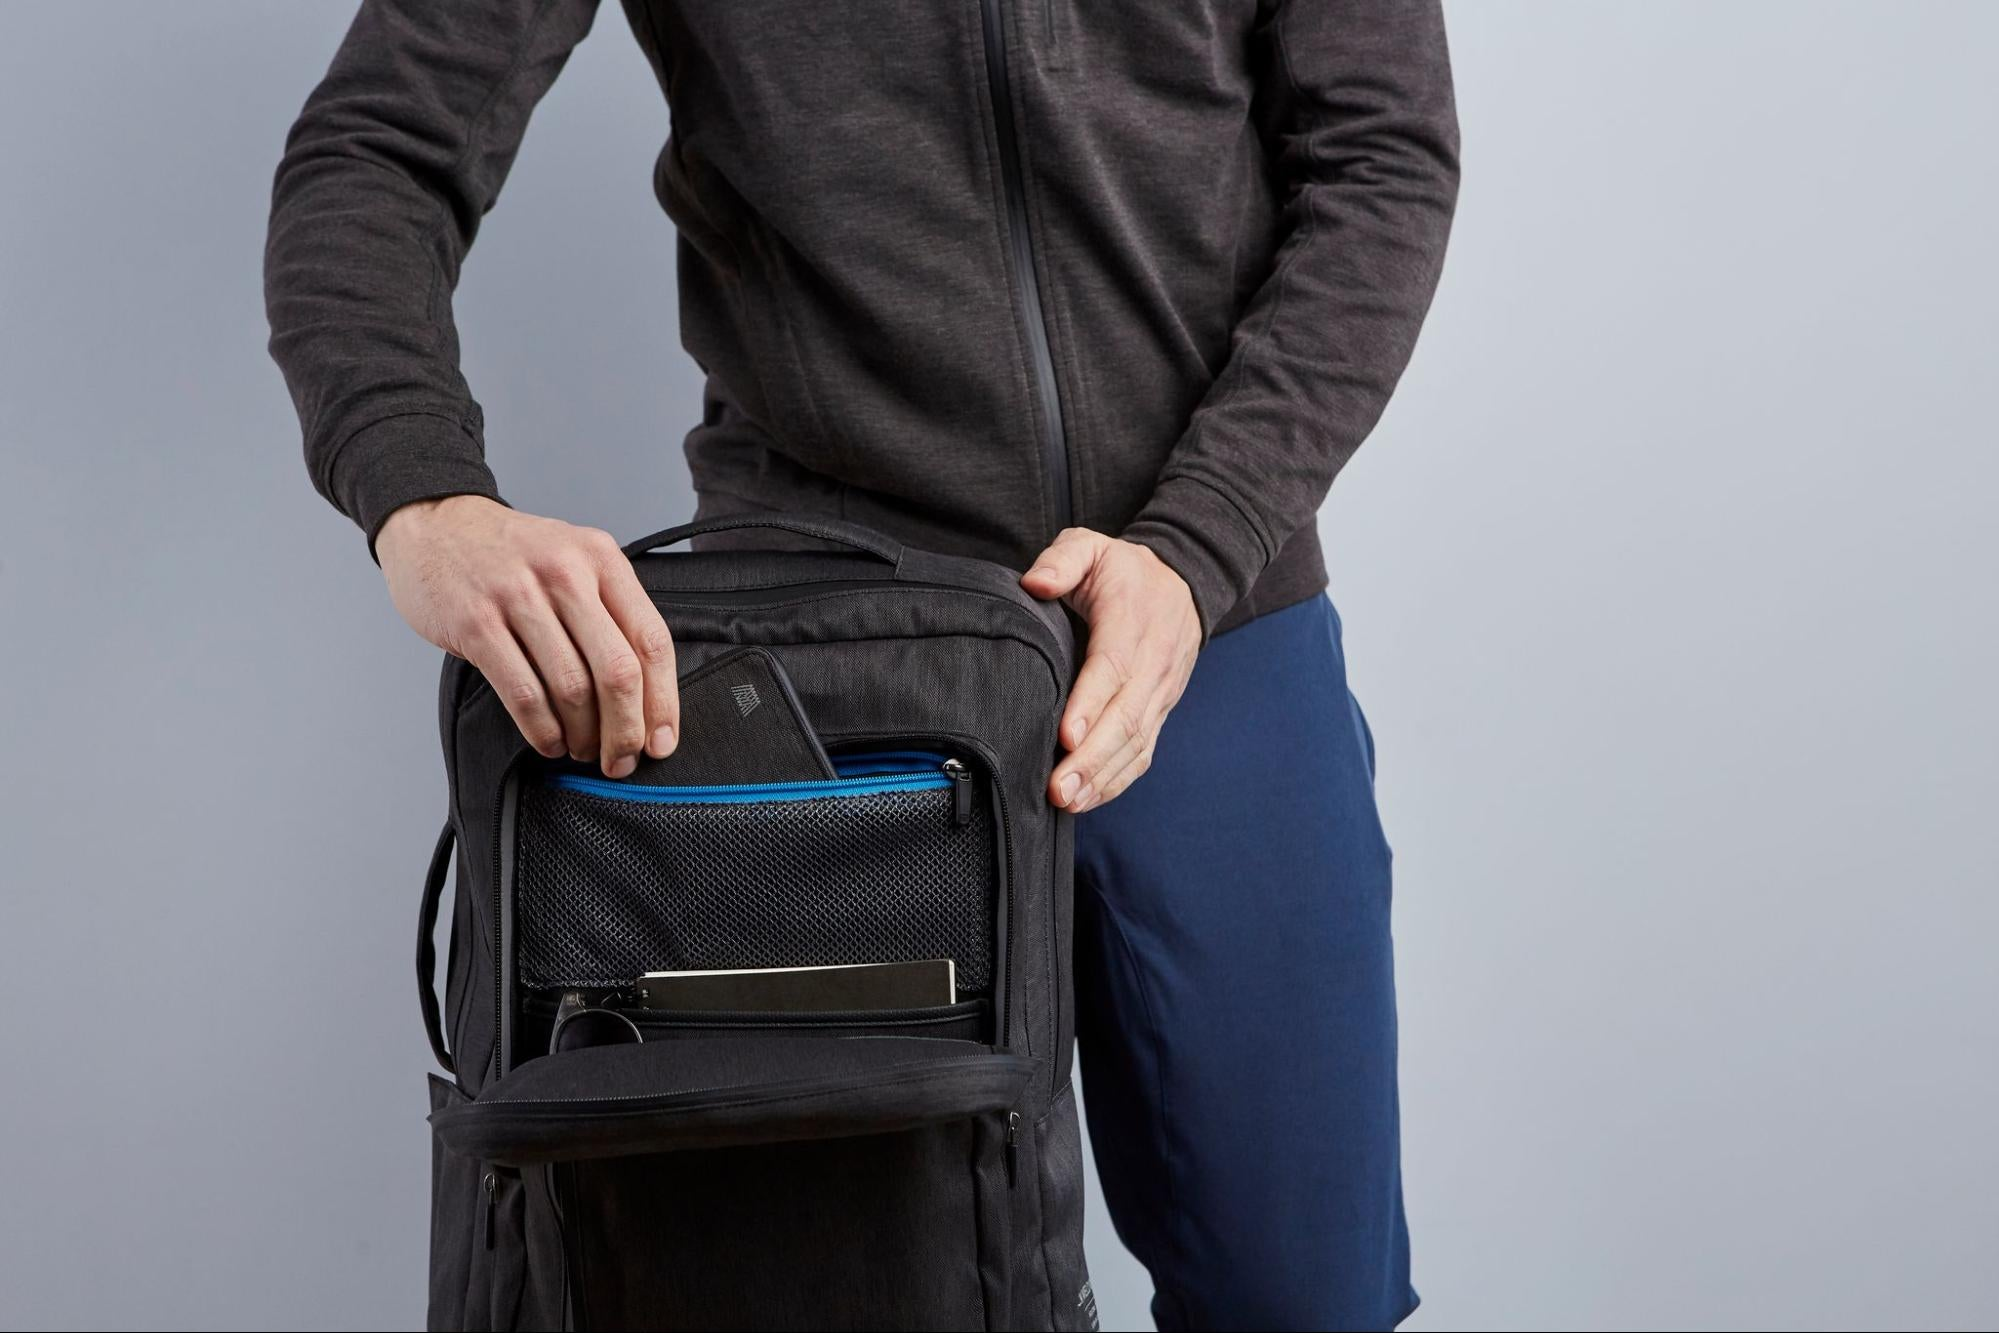 A model demonstrates some of the compartments within a travel pack from Mack Weldon.